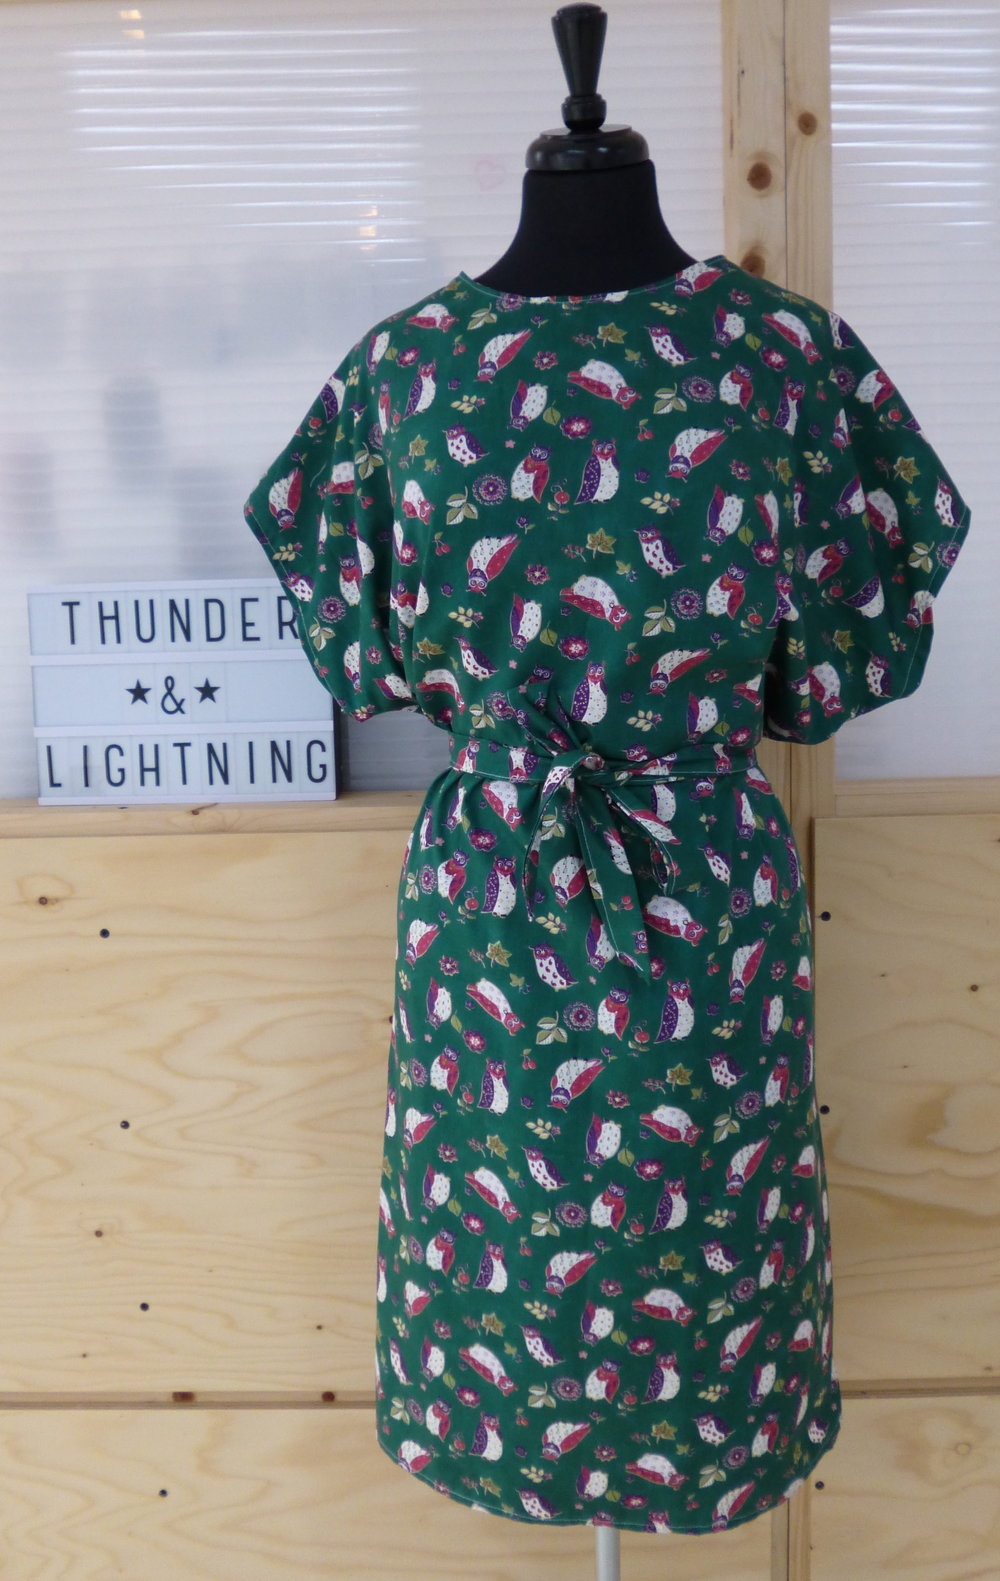 Green Owl Print 40's Style Dress - Size XL - By Vintage Style Me - £53.00